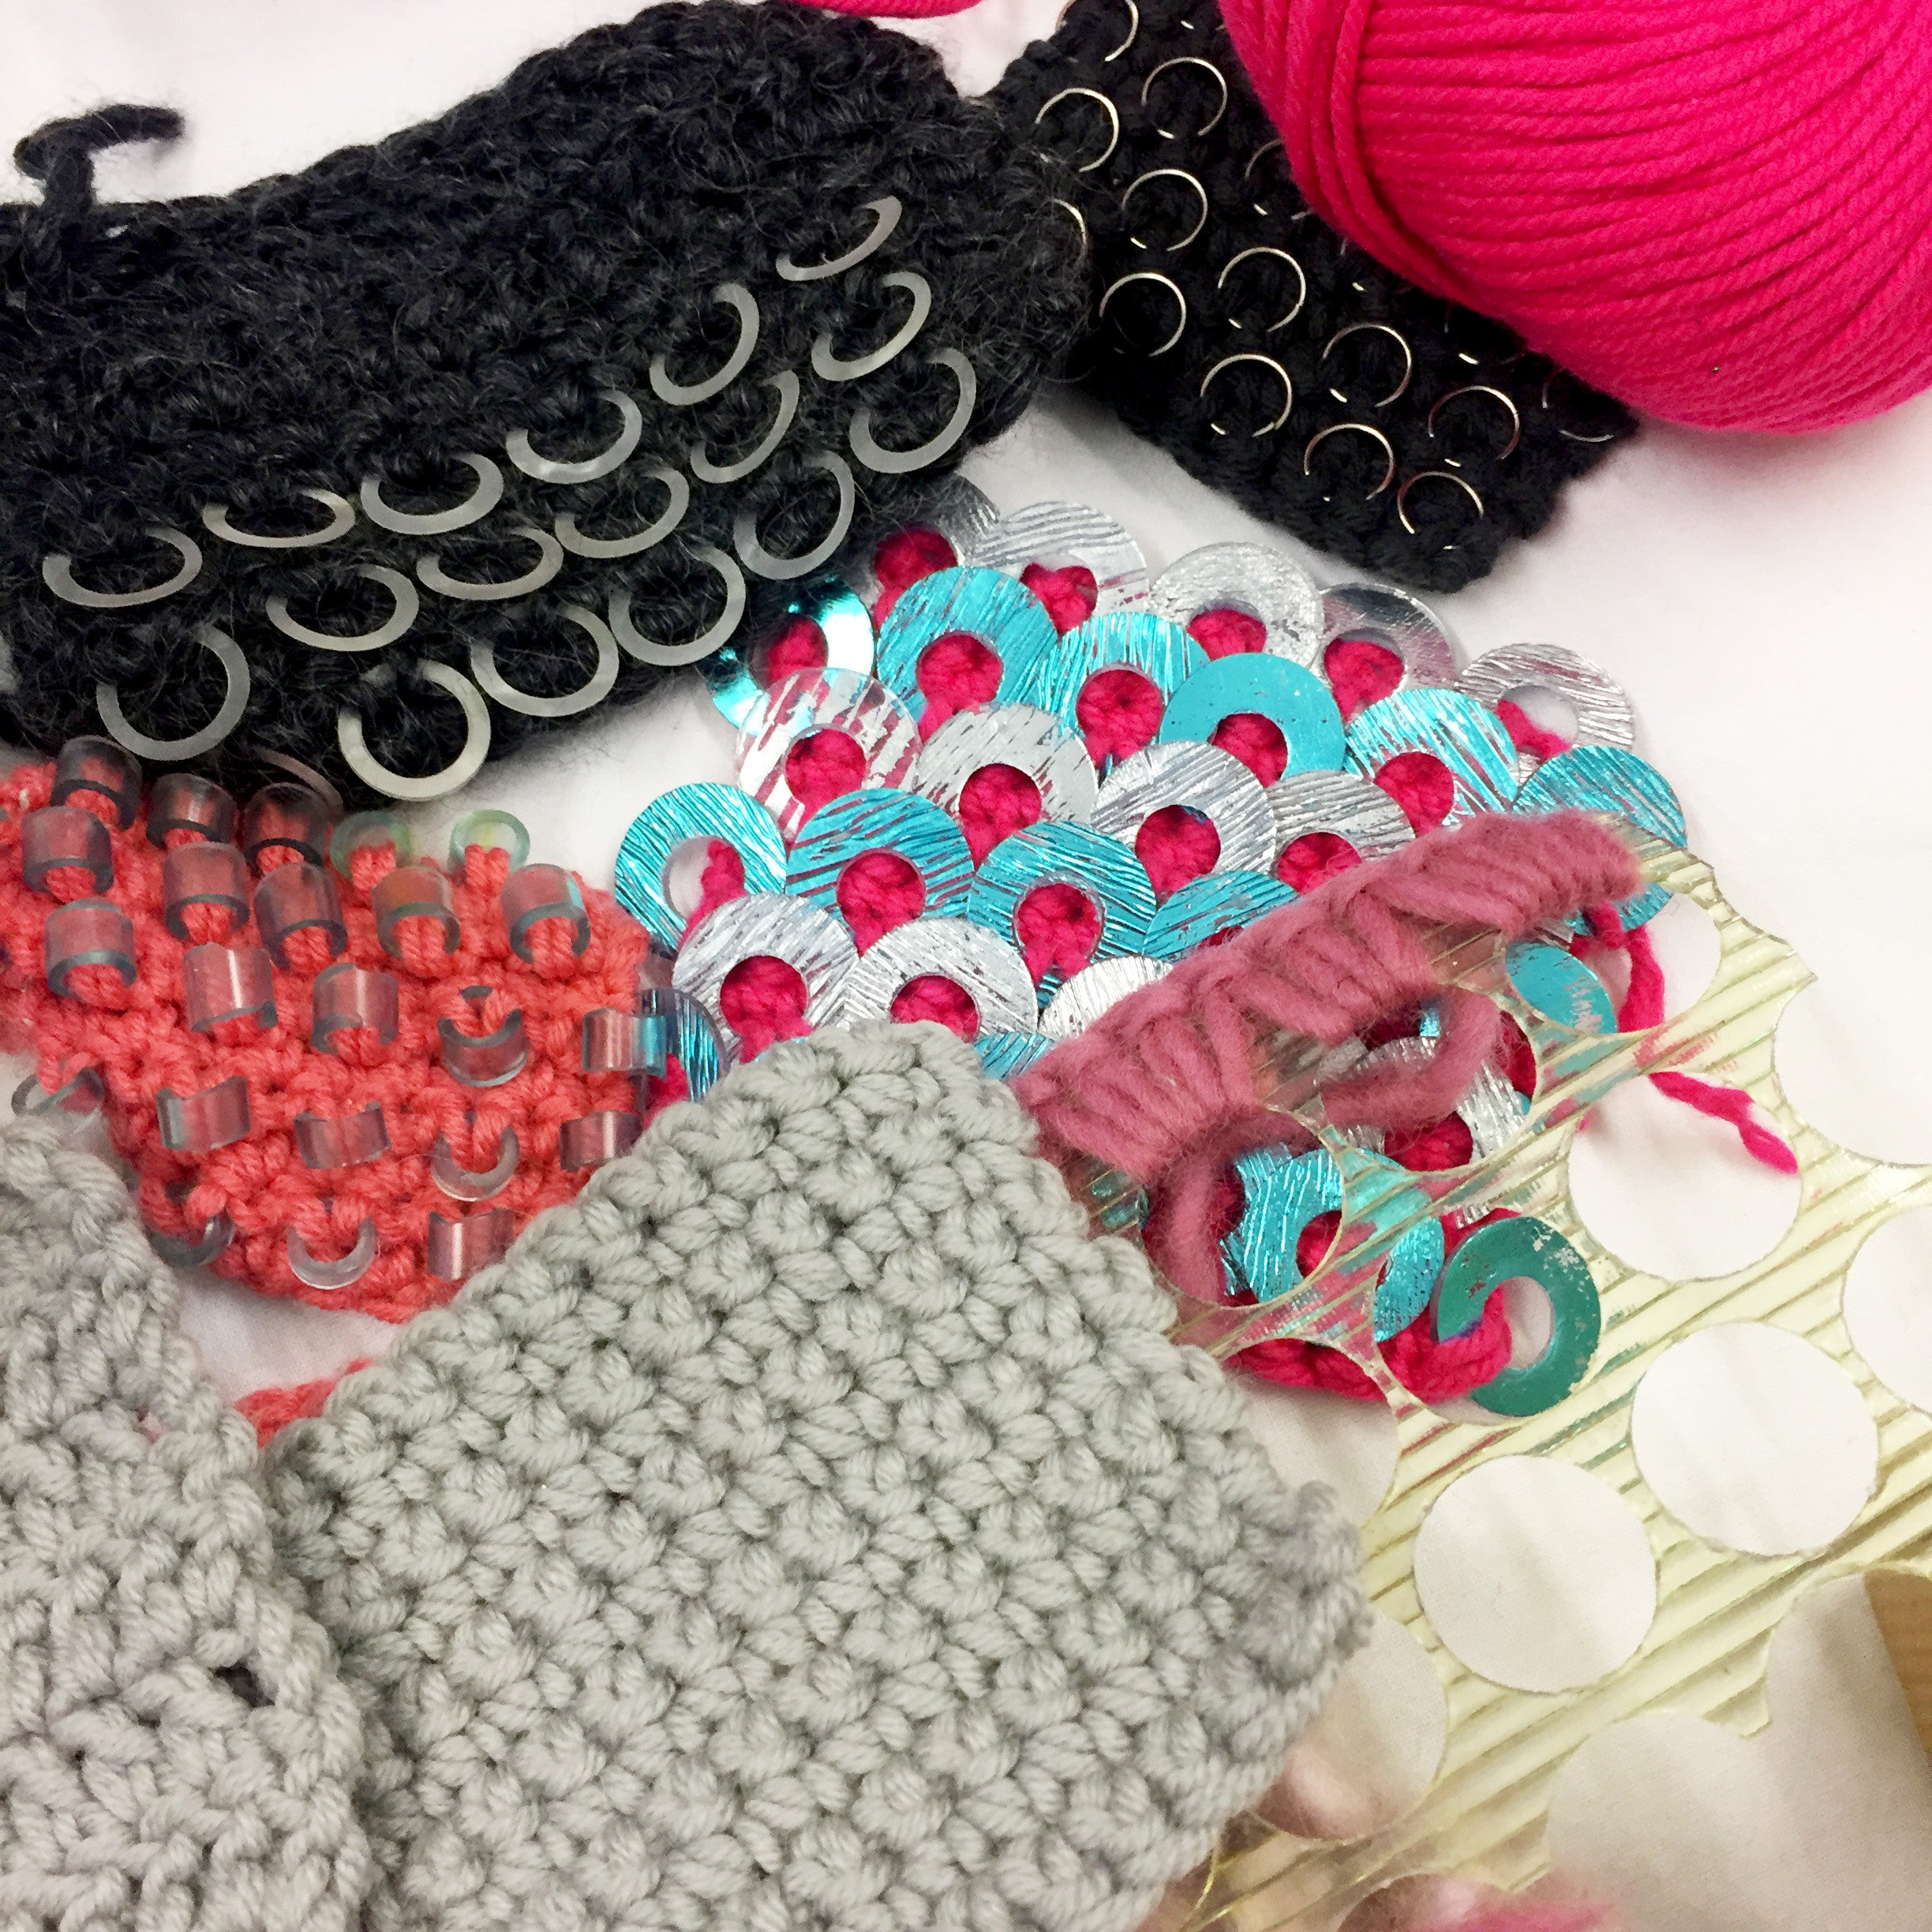 EXPERIMENTAL CROCHET WORKSHOP